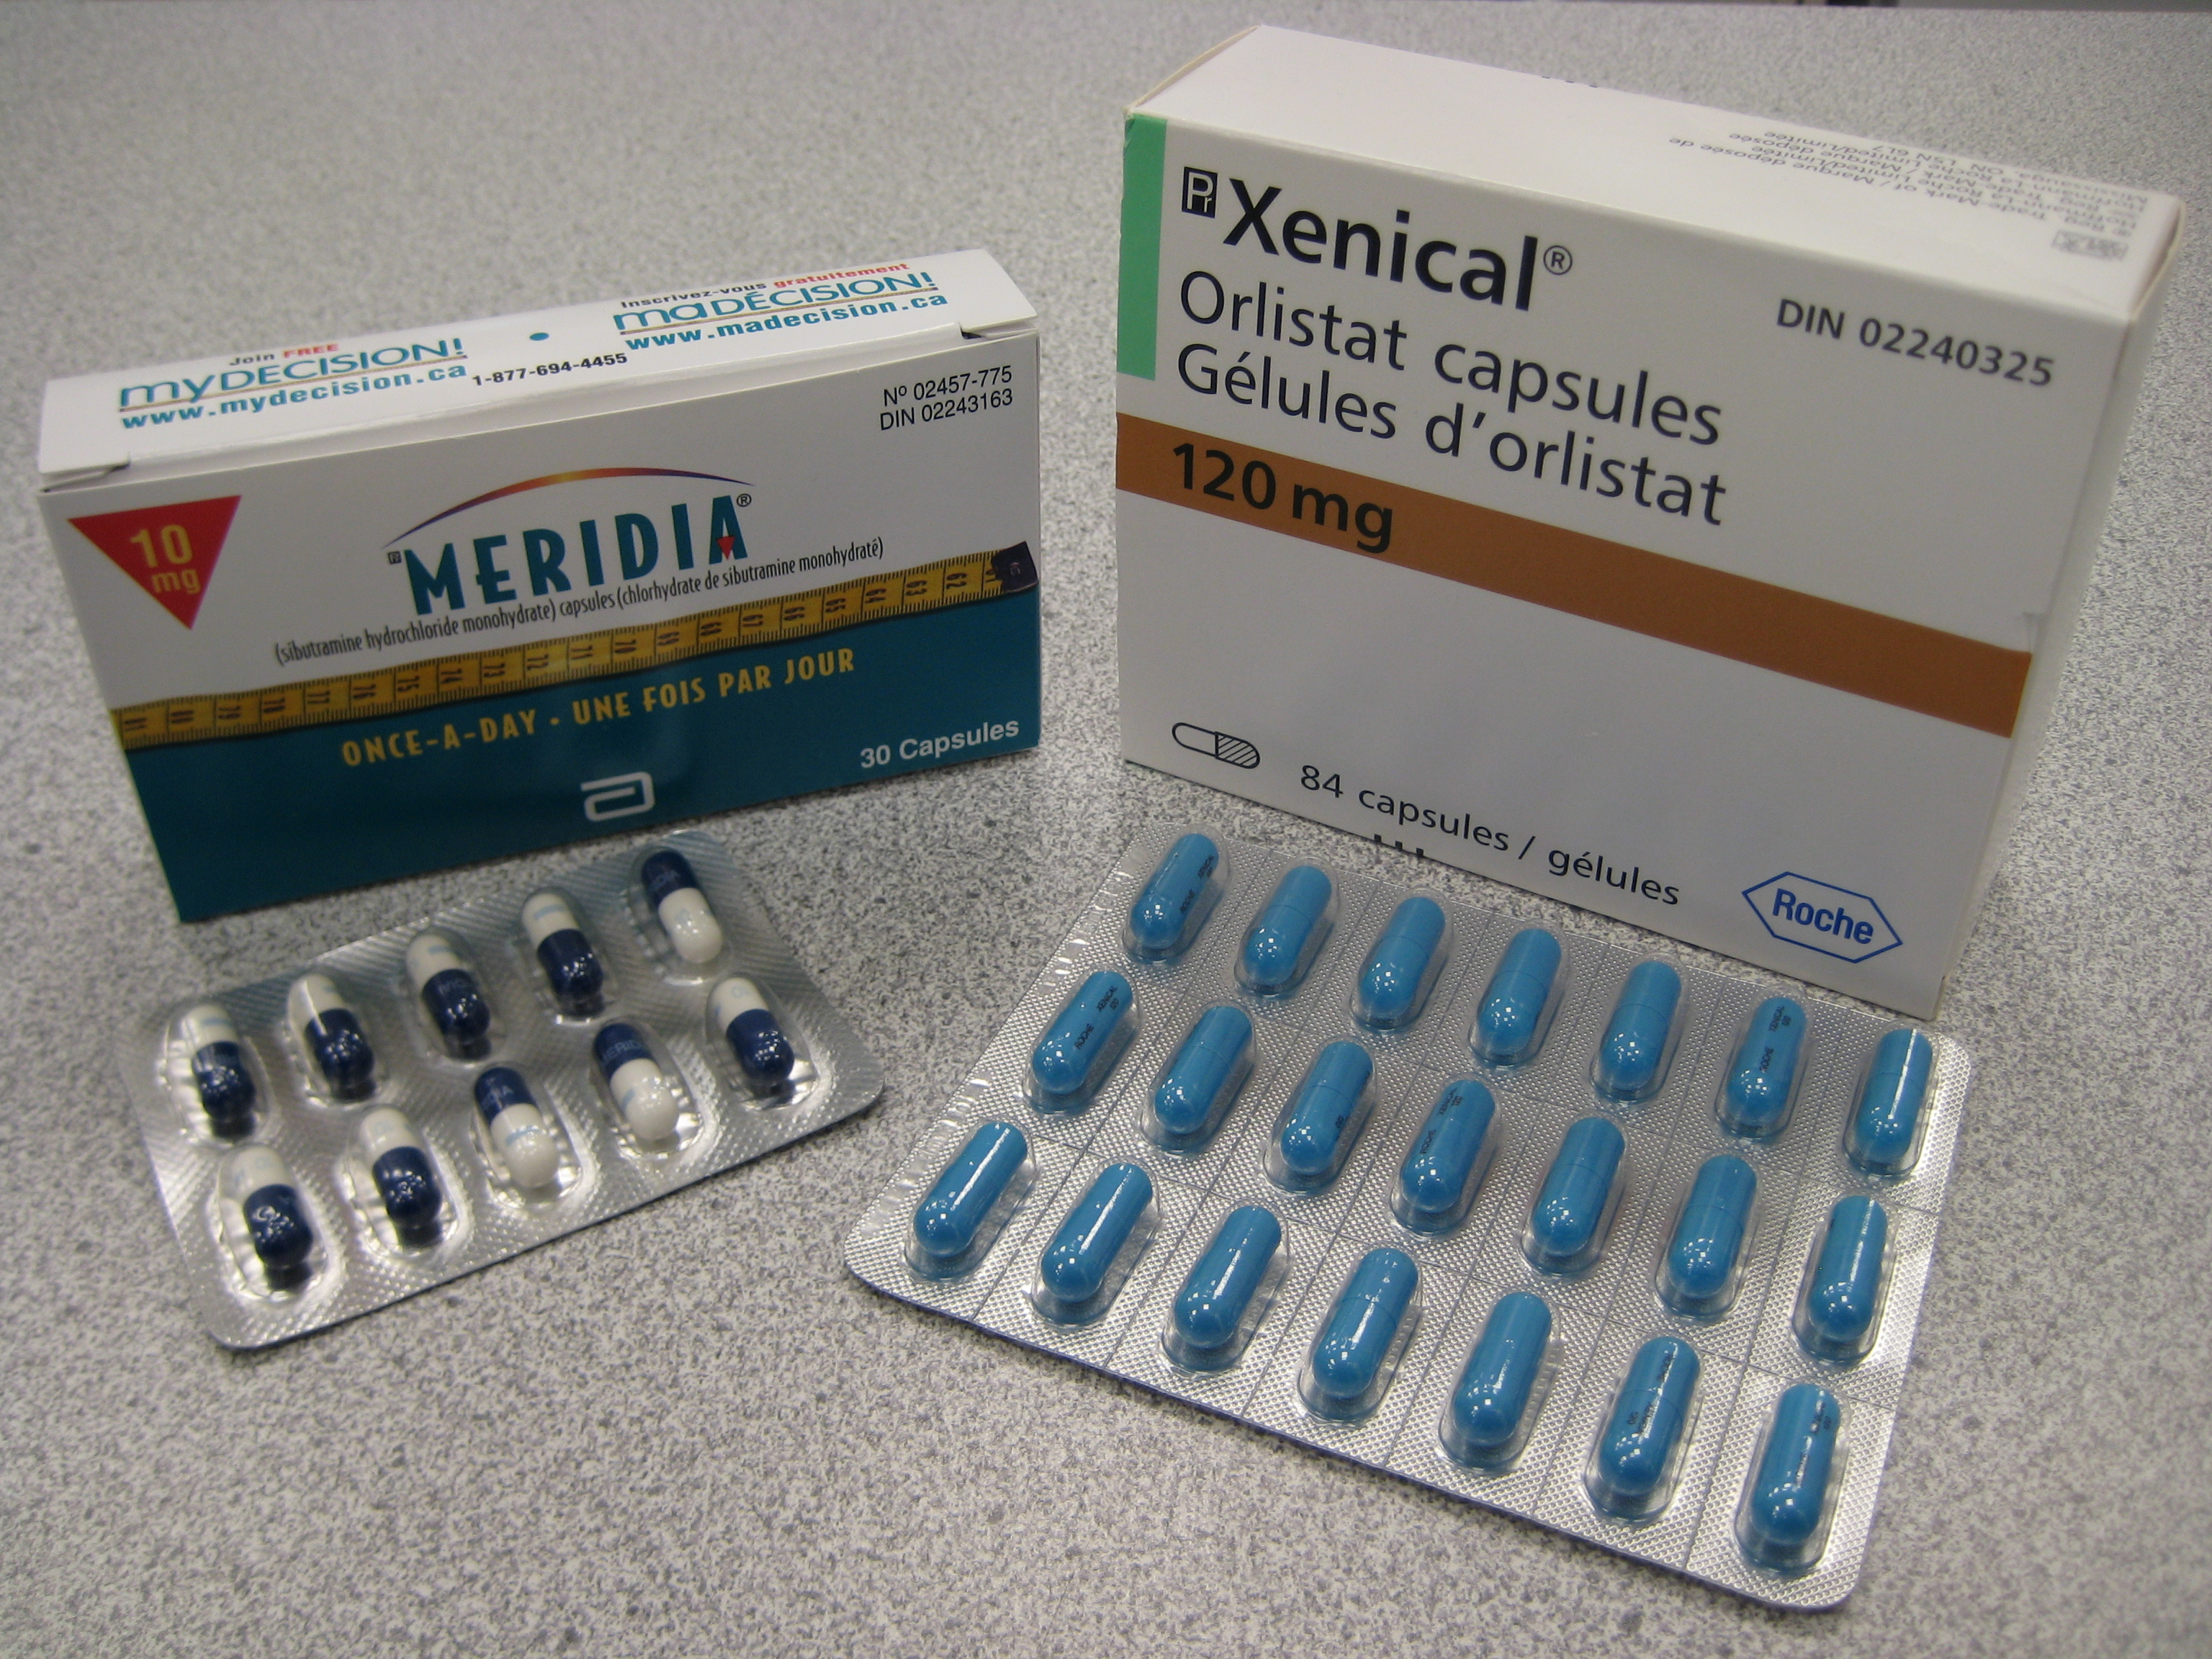 The cardboard packaging of two medications used to treat obesity. Orlistat is shown above under the brand name Xenical in a white package with the Roche logo in the bottom right corner (the Roche name within a hexagon). Sibutramine is below under the brand name Meridia.  The package is white on the top and blue on the bottom separated by a measuring tape. The A of the Abbott Laboratories logo is on the bottom half of the package.